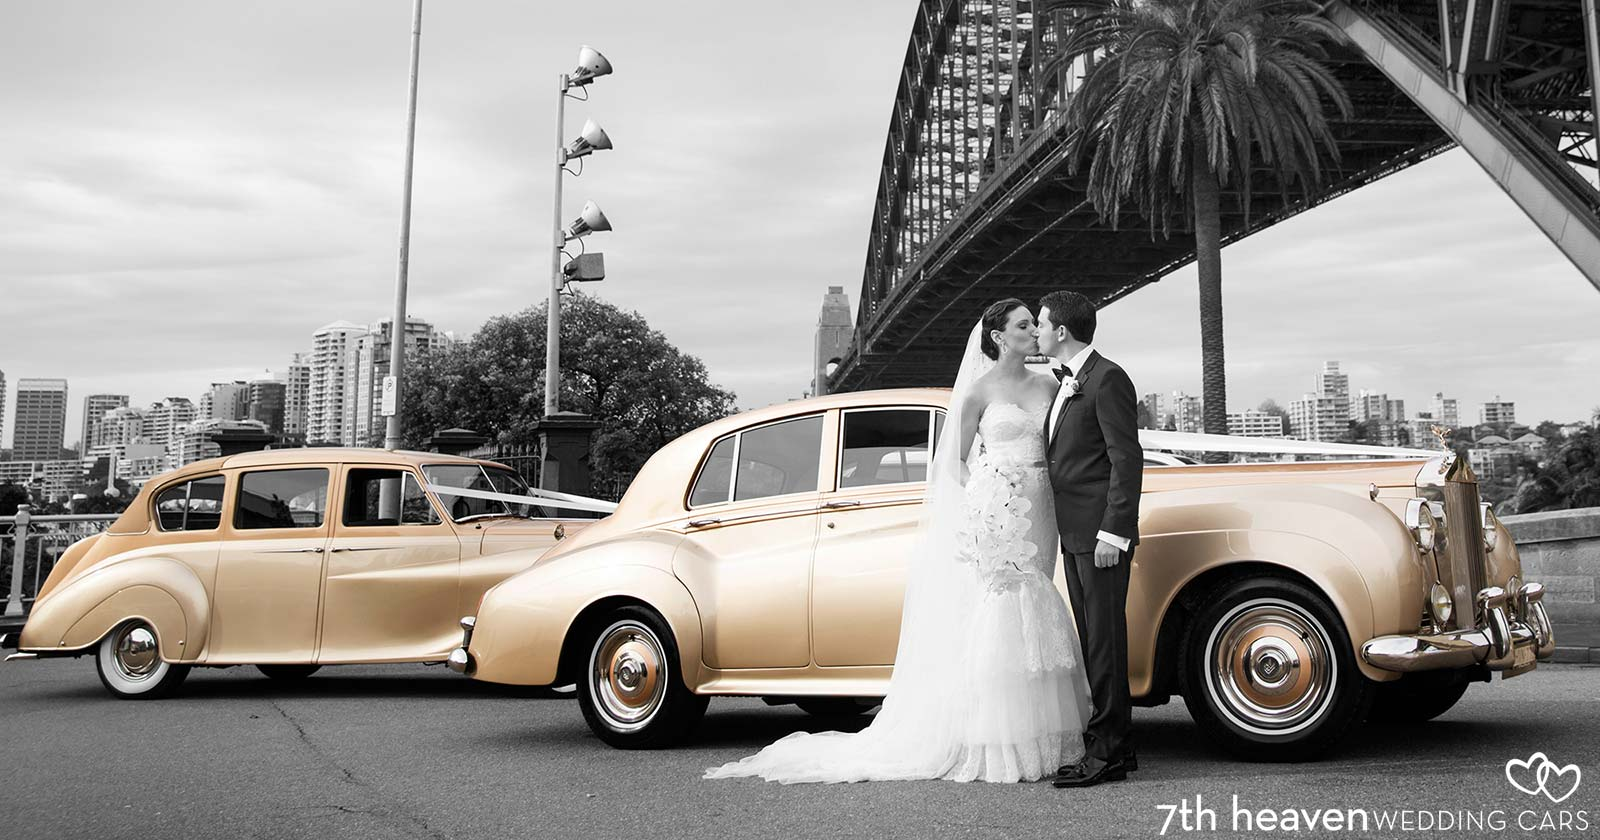 wedding cars sydney - wedding car hire